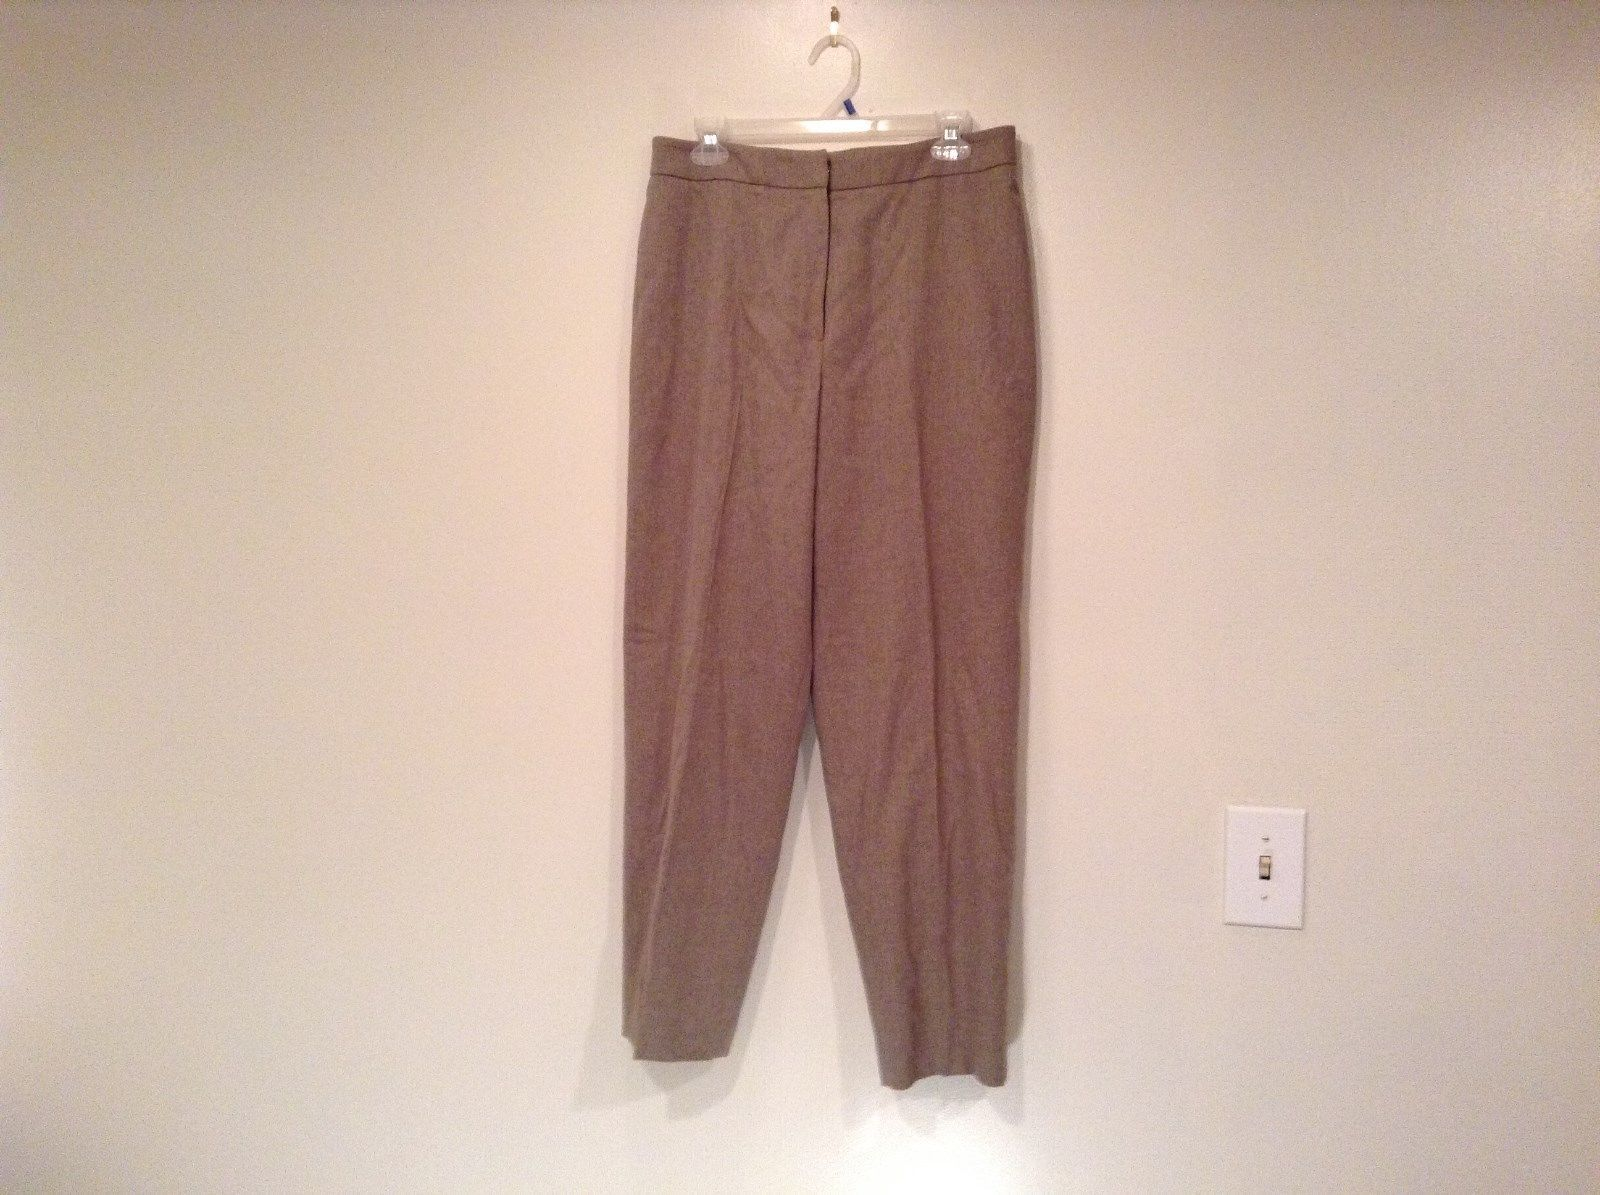 Size 12 Talbots Petite Stretch Tan Light Brown Lined Dress Pants Wool Blend